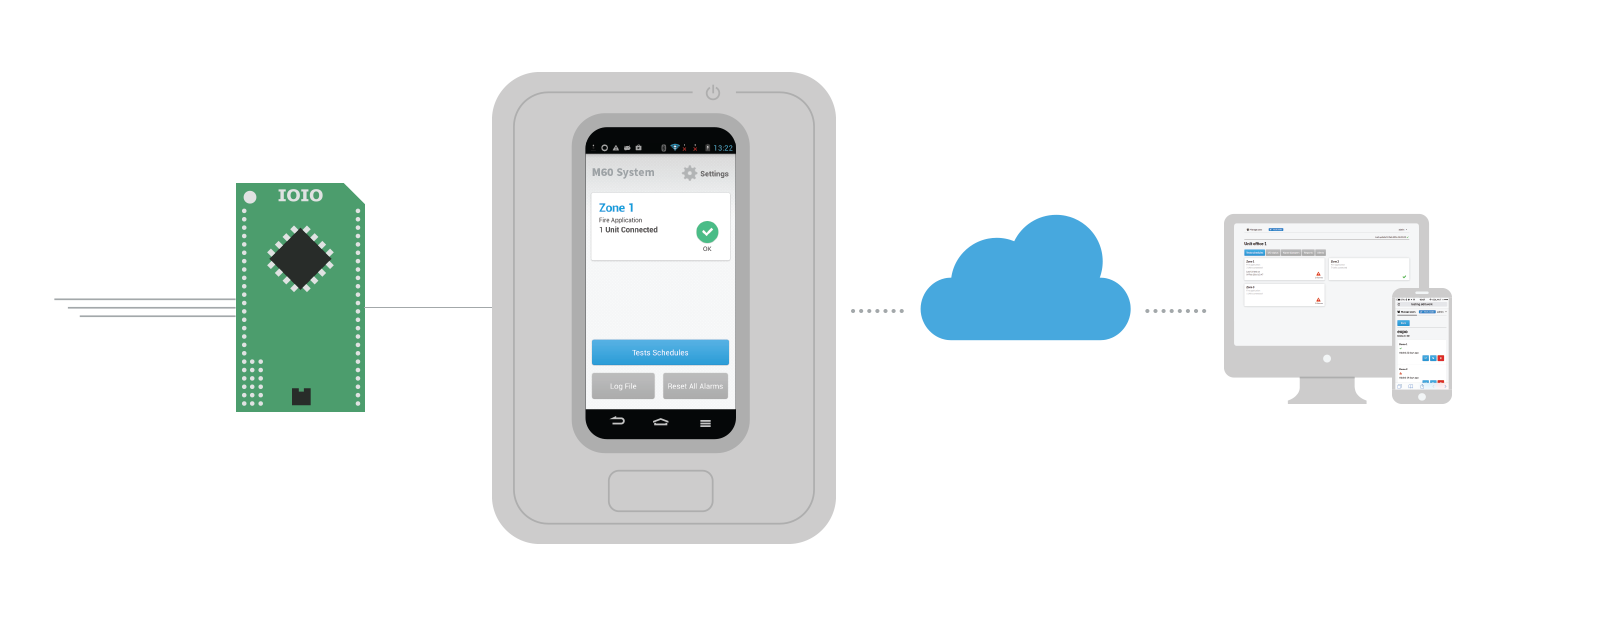 The IOIO receives data from the dampers and transfers them to the local Android application, used as a bridge for transferring data to the cloud. This allows the user to access data from the local device or any other location via a computer or mobile phon